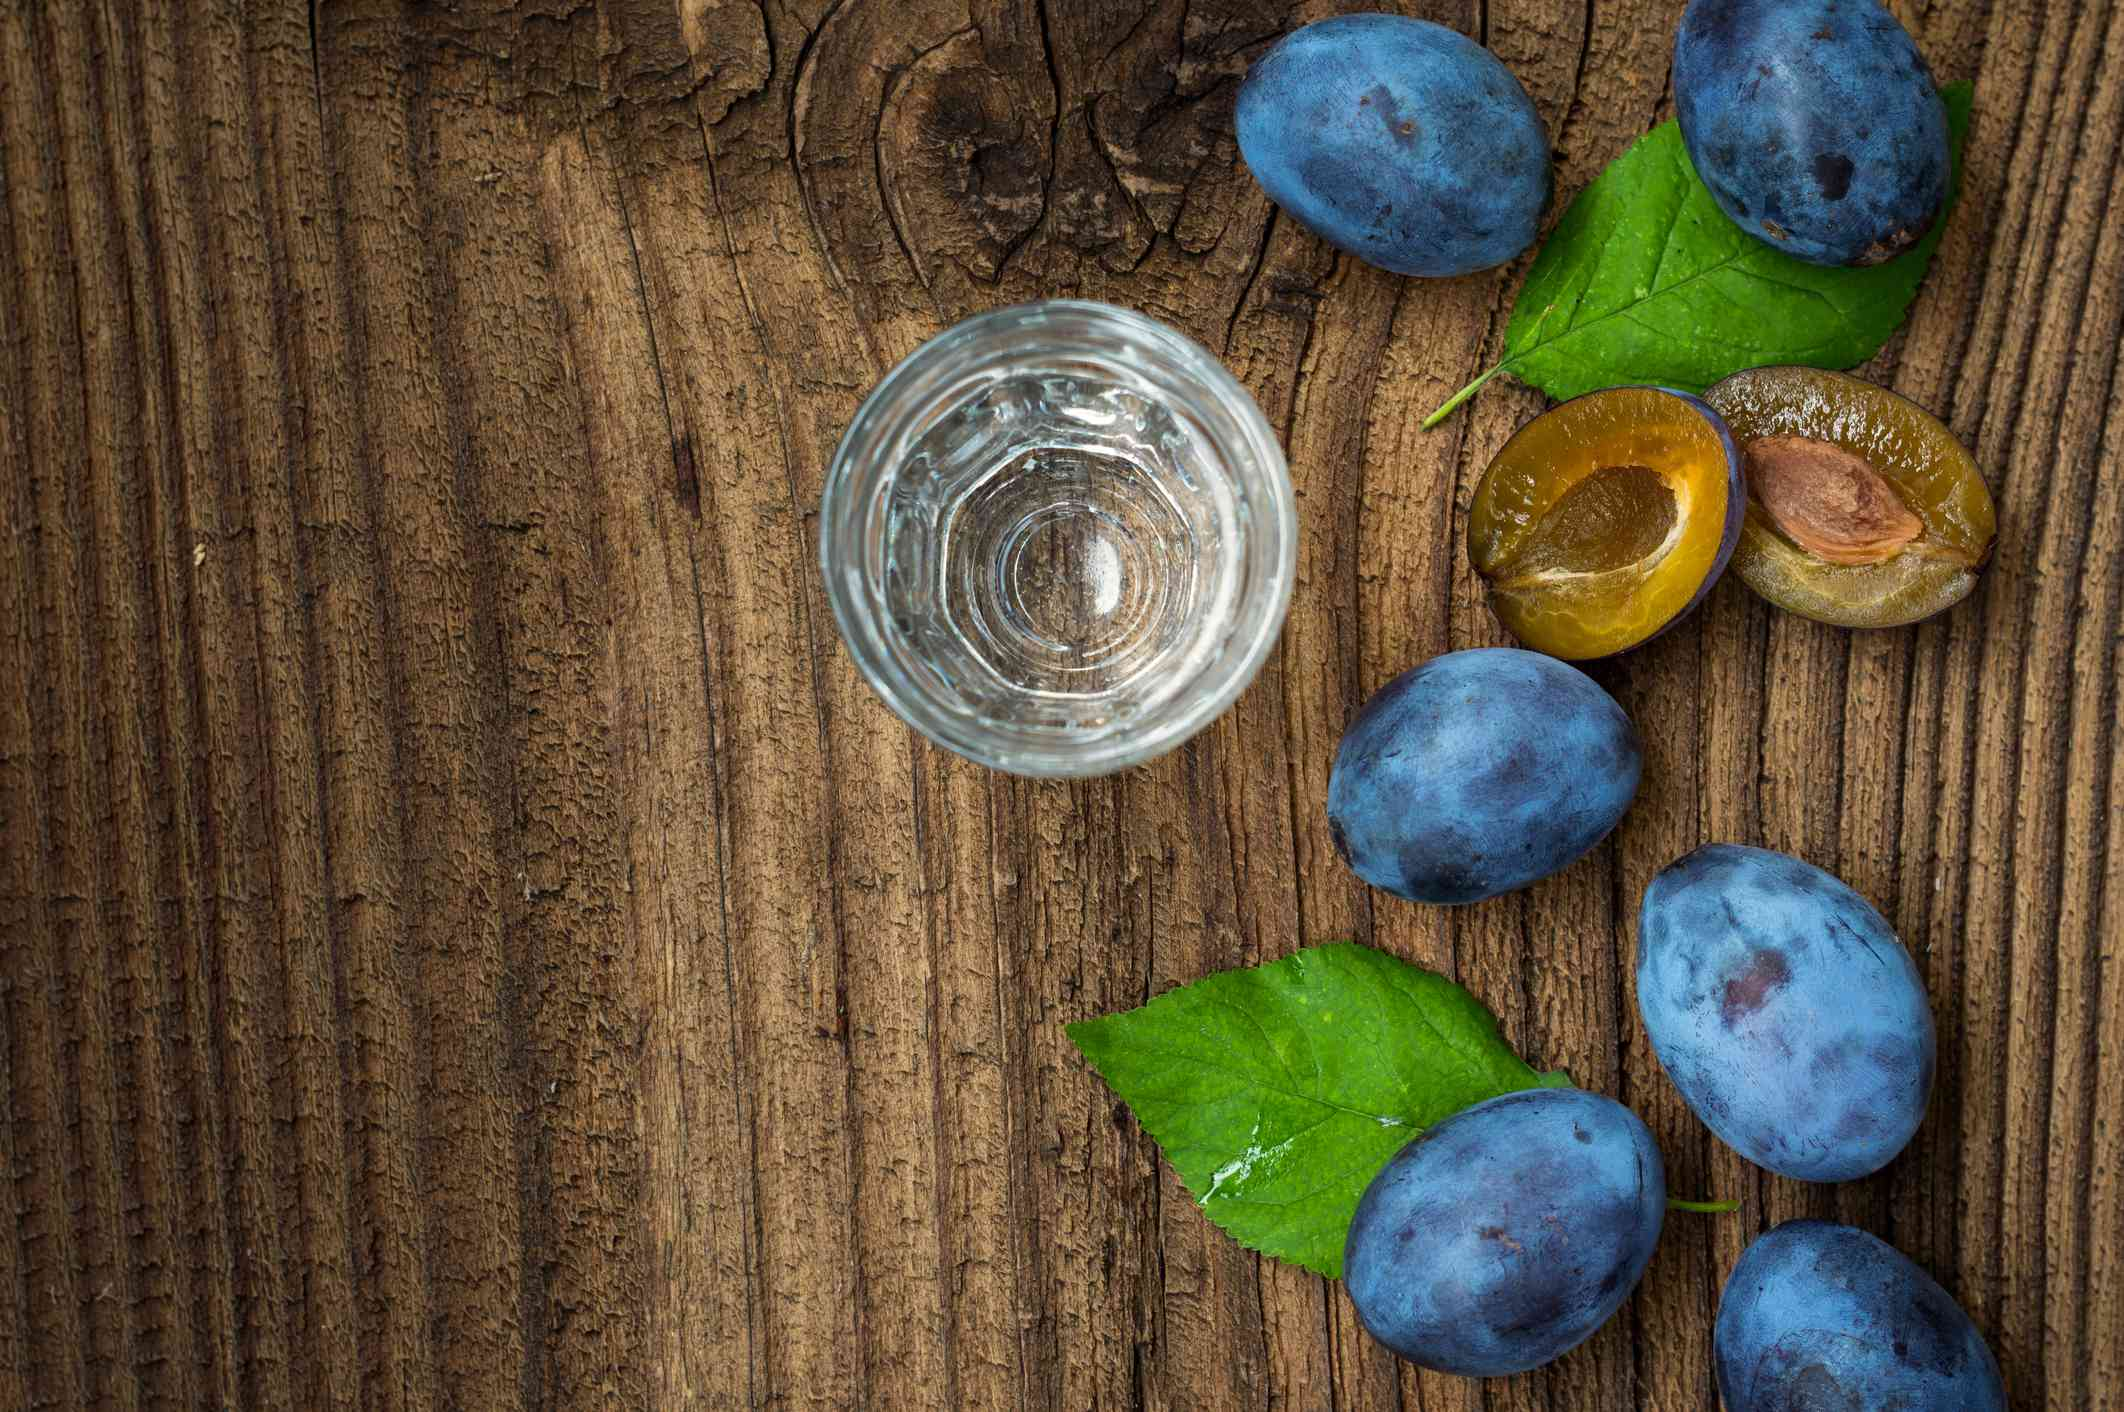 Plums and shot glass